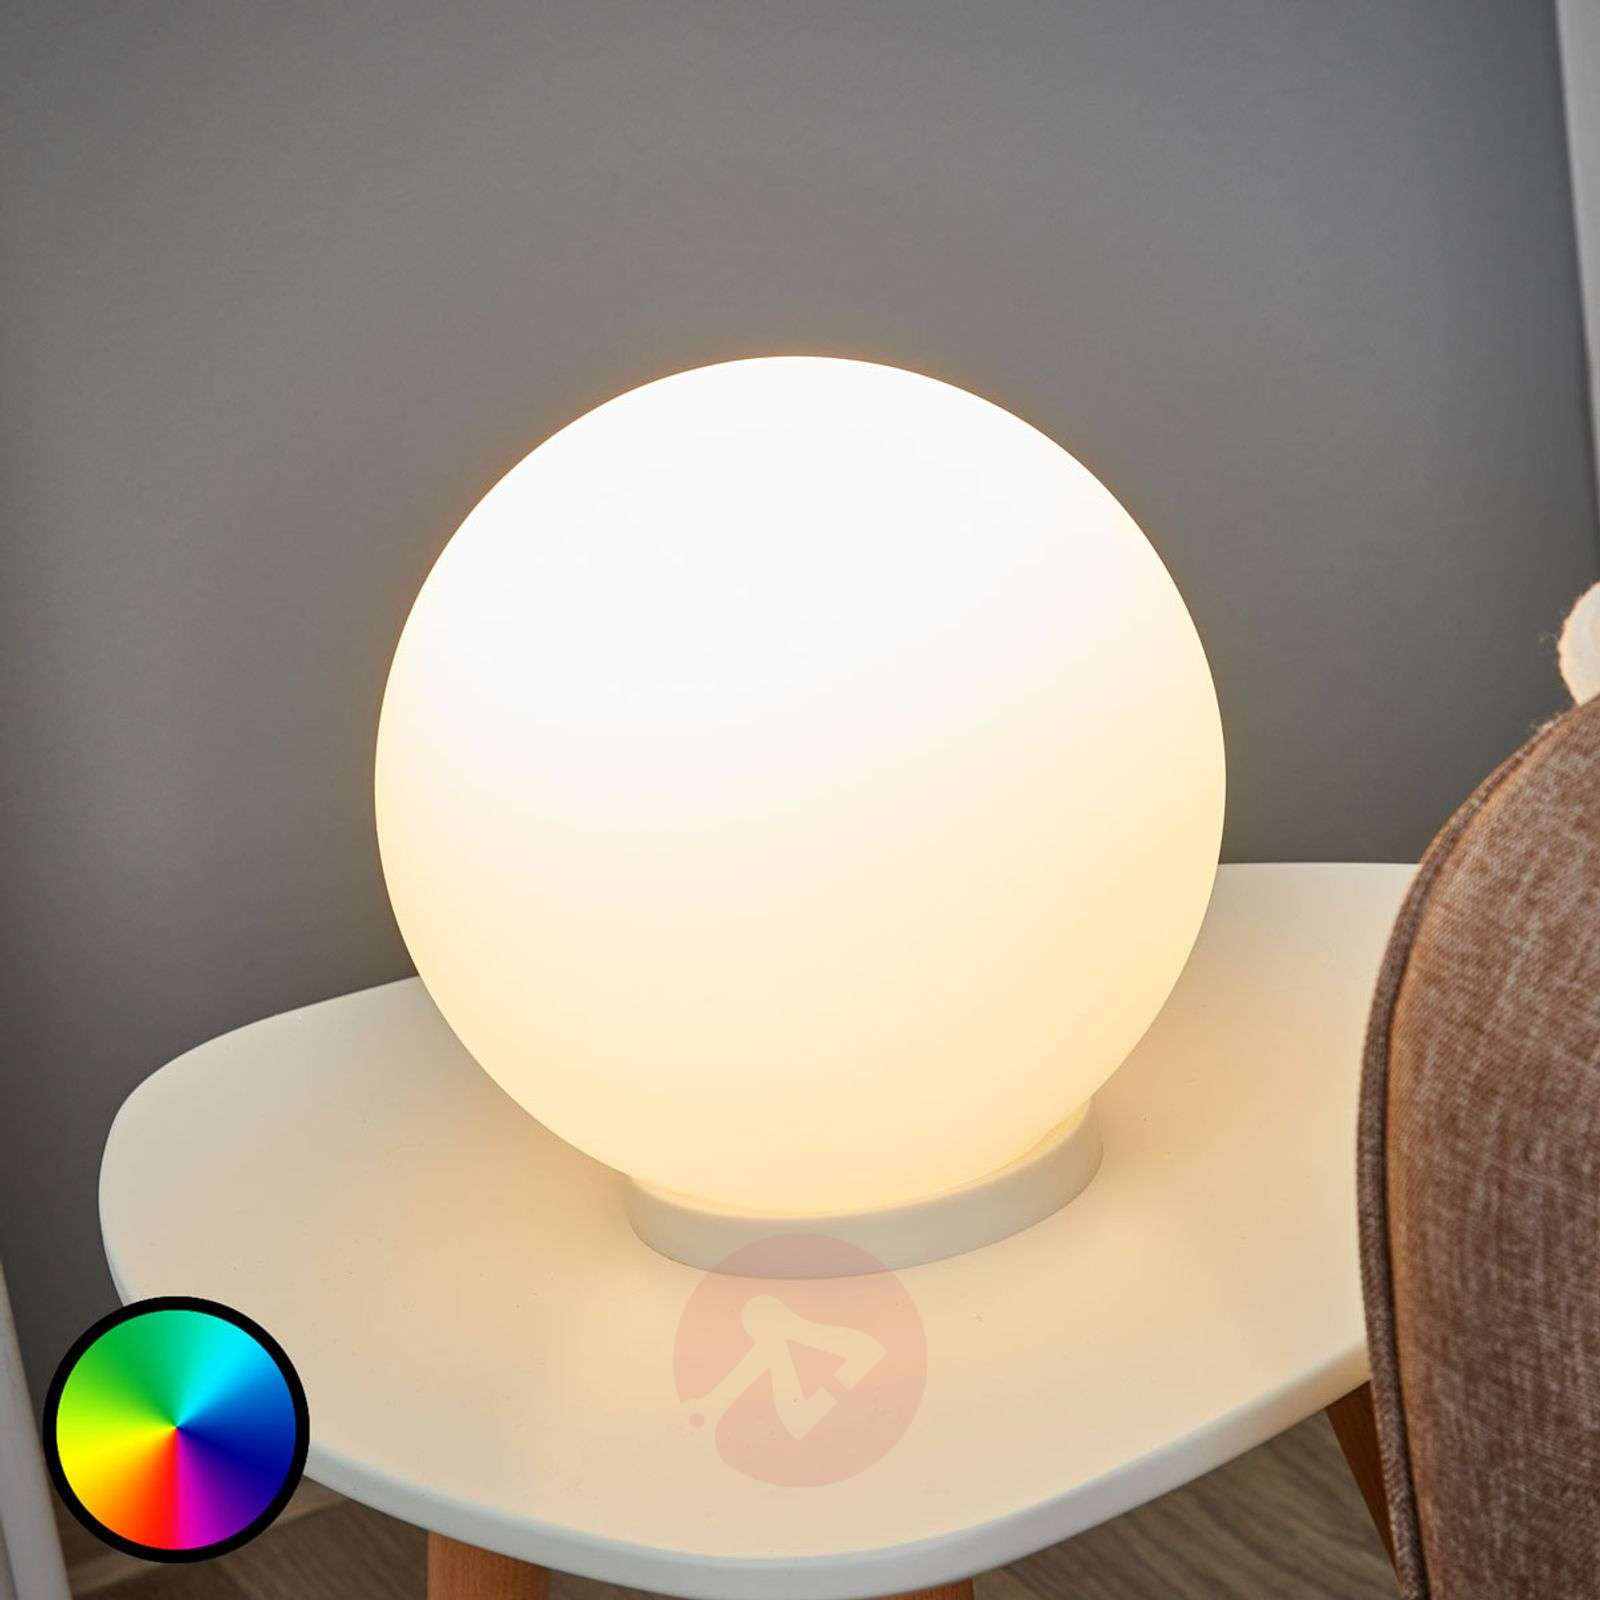 Spherical table lamp Rondo-C LED RGBW-3031995-01